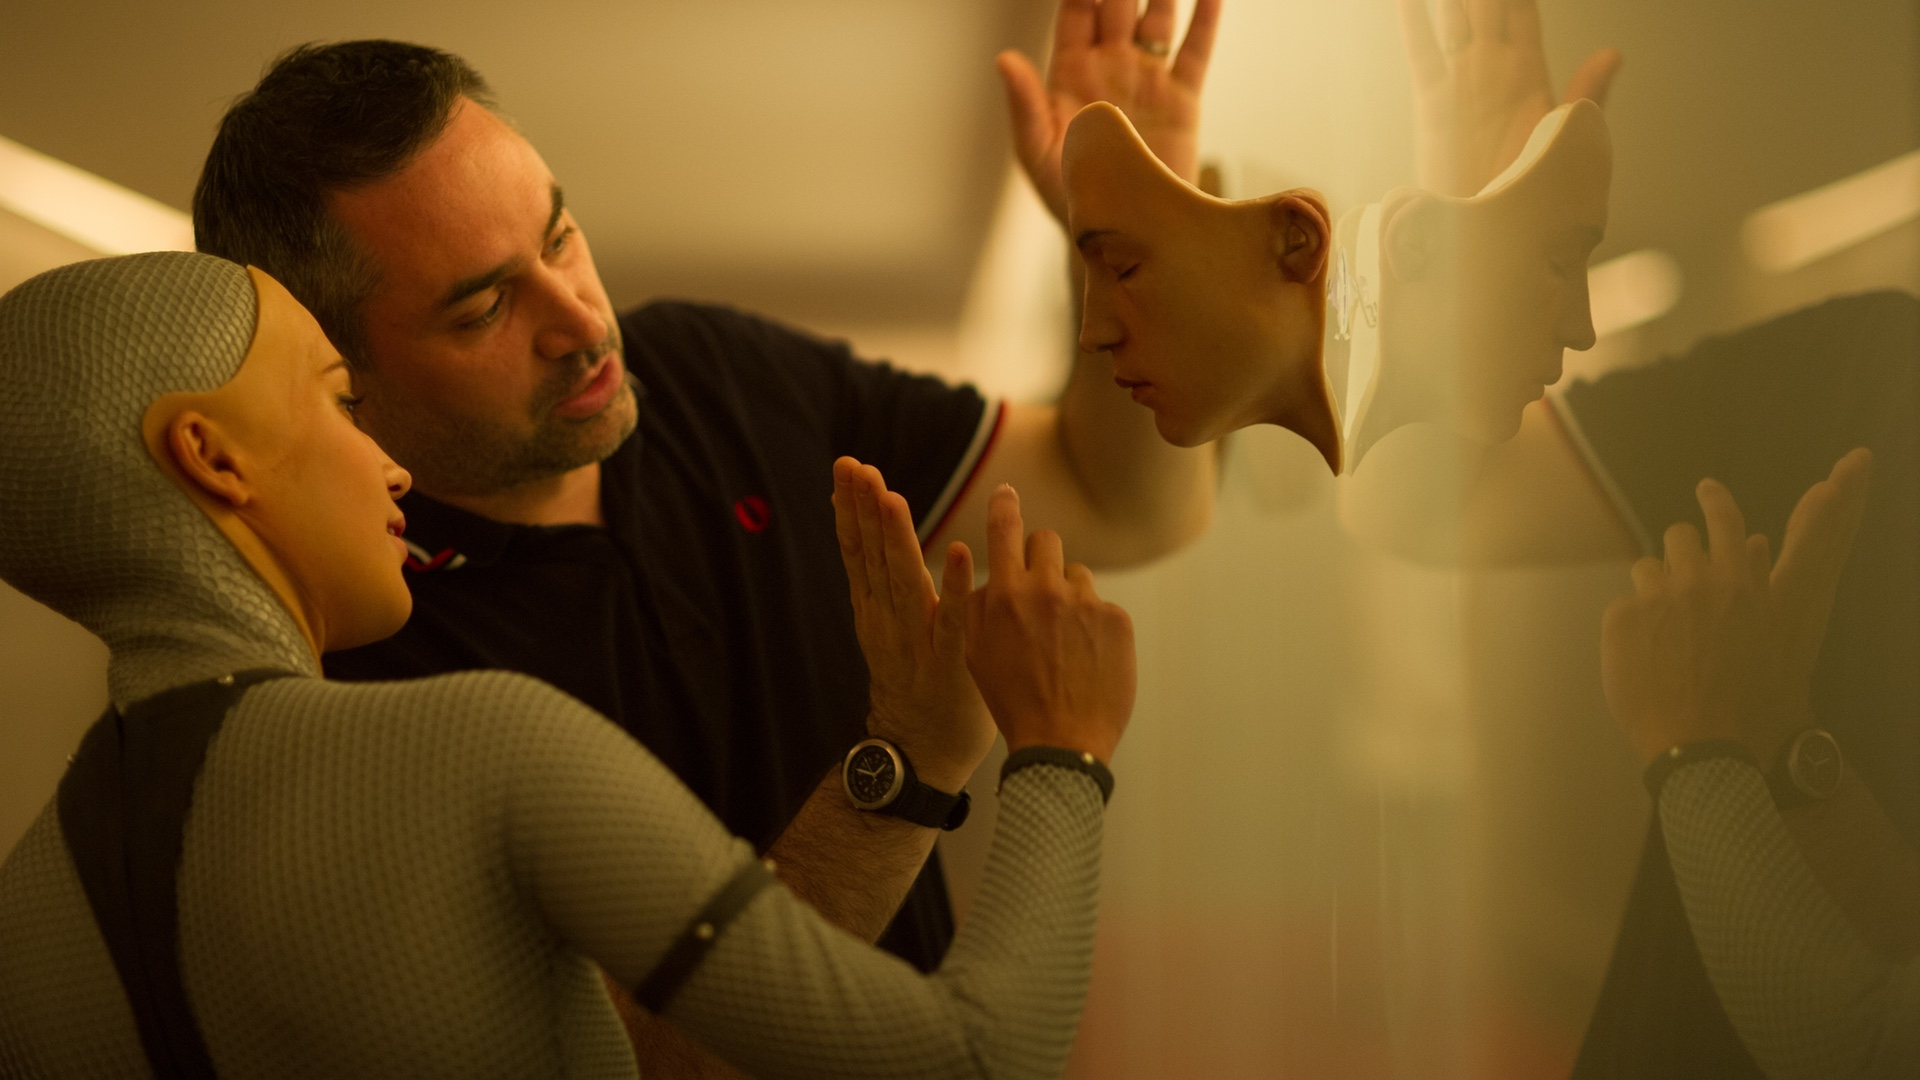 annihilation-director-alex-garland-is-developing-a-silicon-valley-drama-for-fx-social.jpg